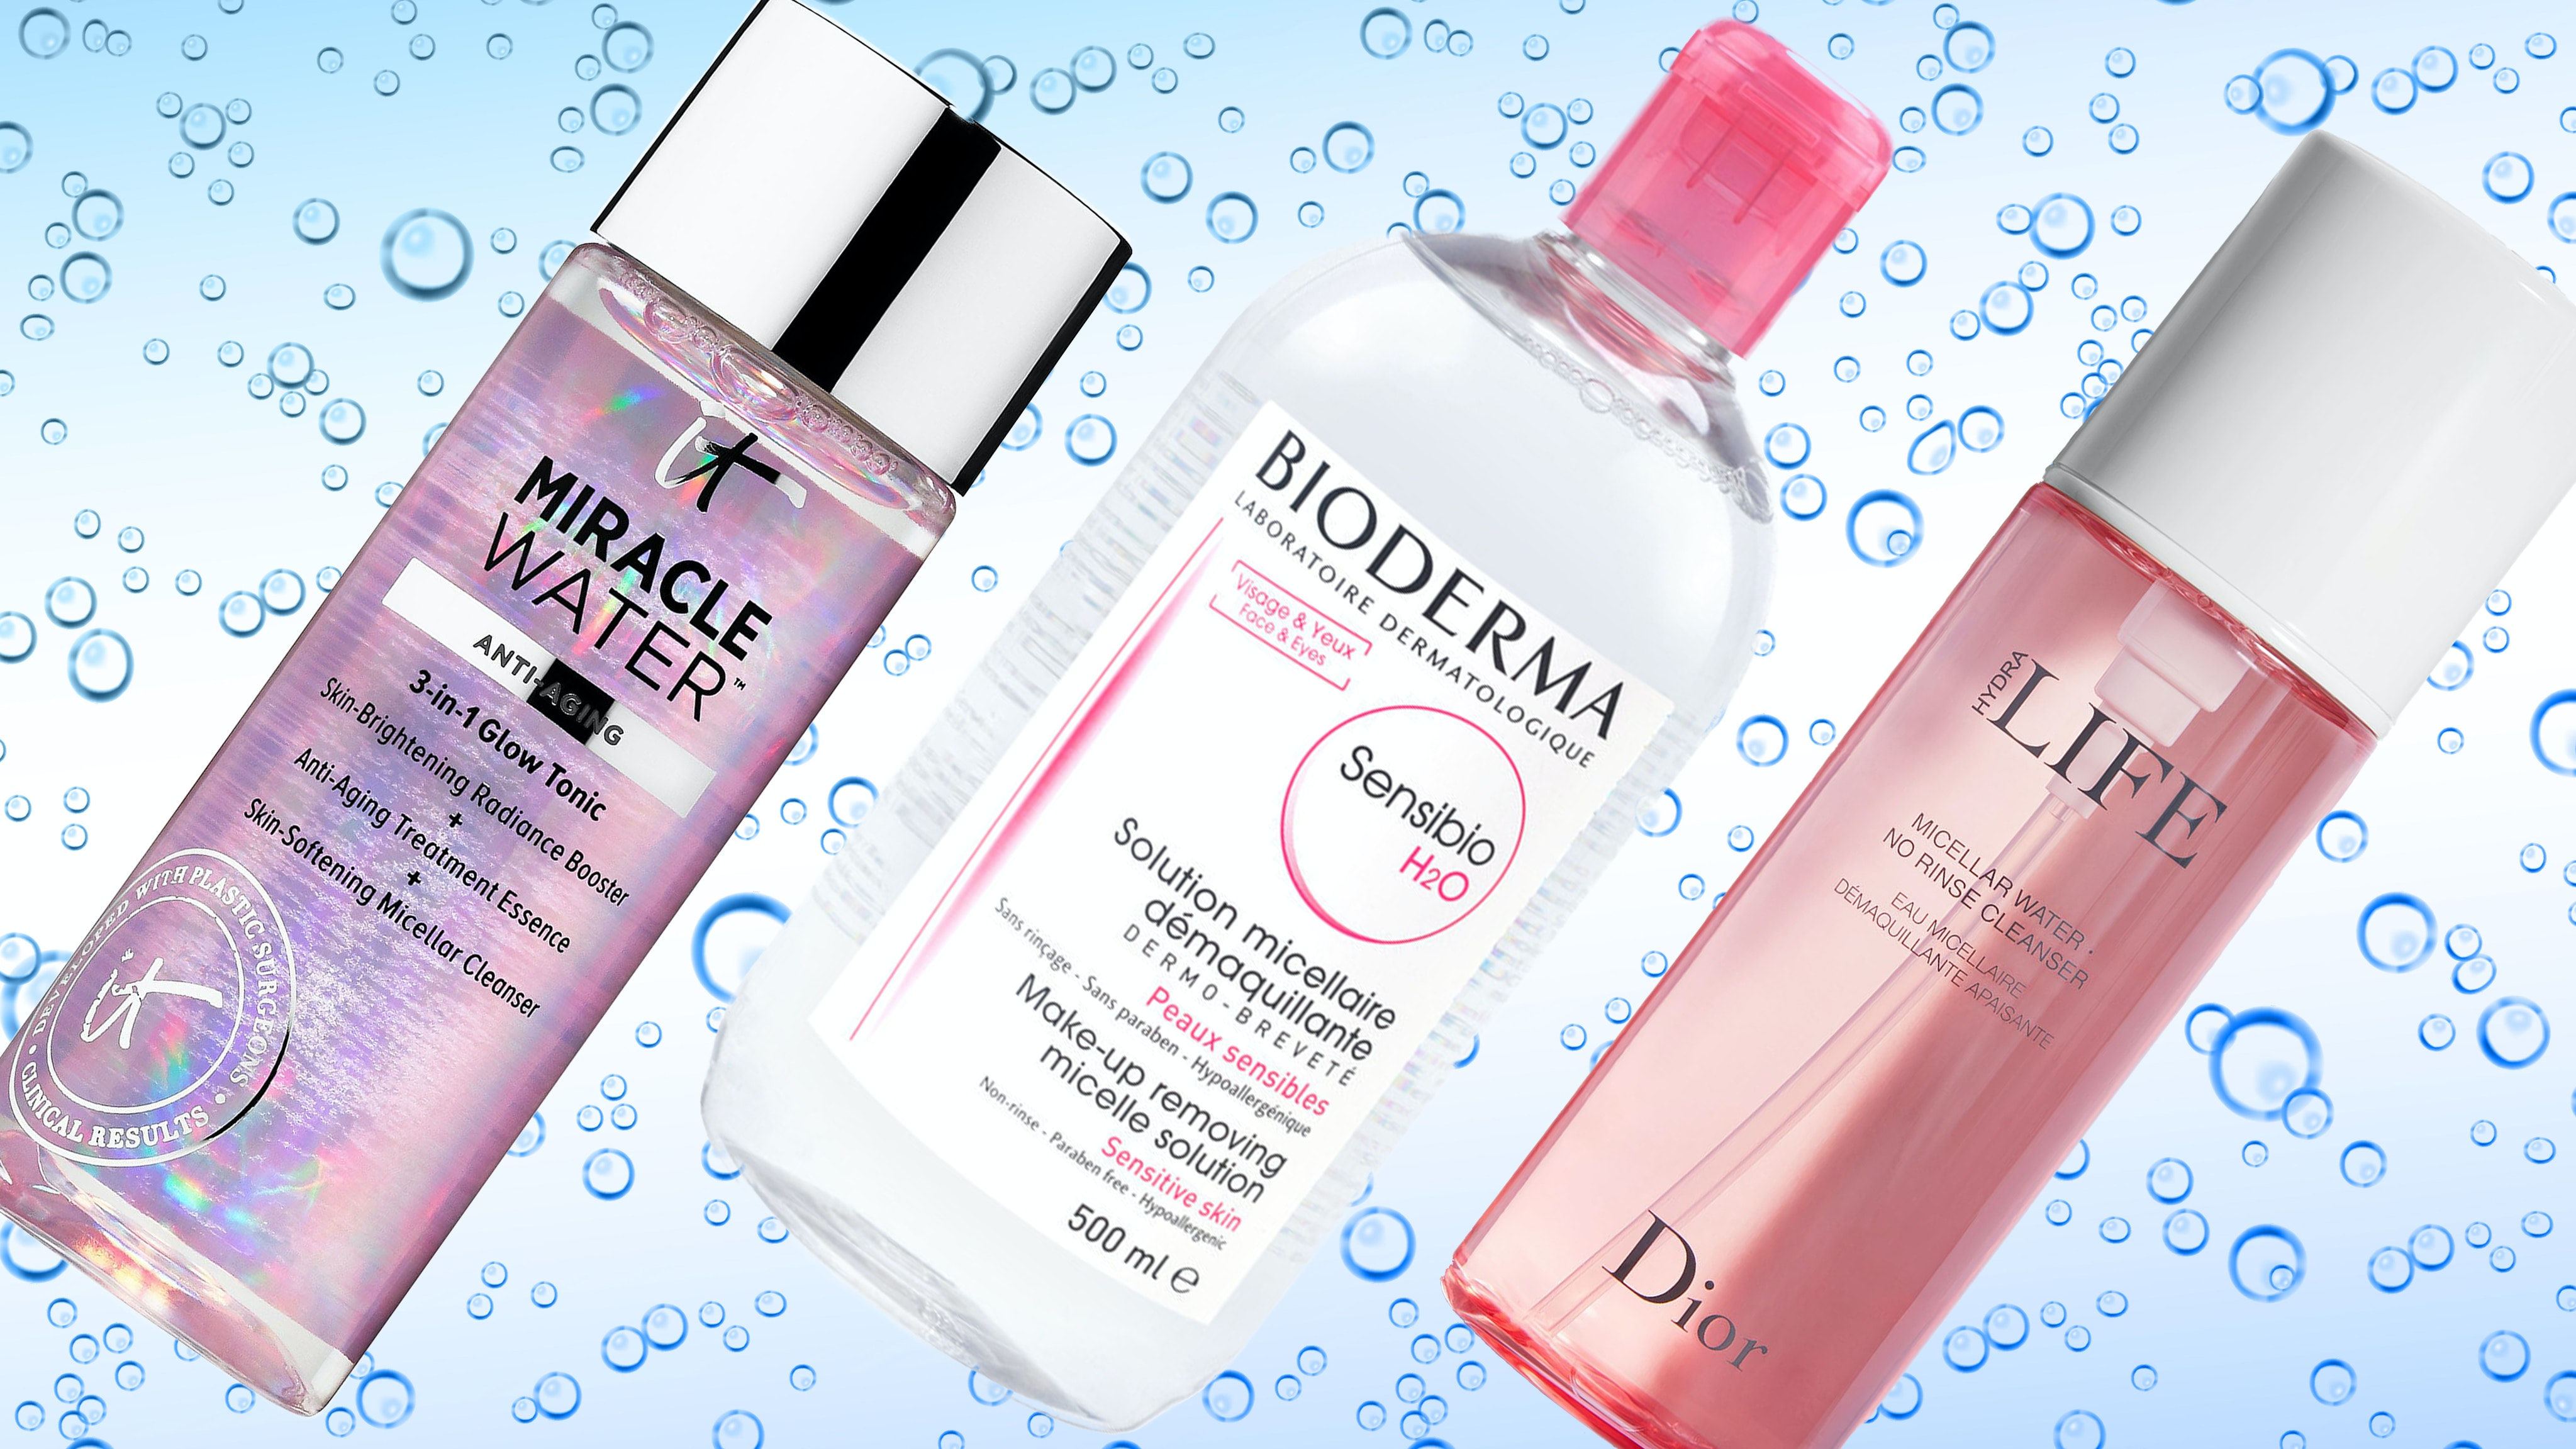 If You Haven't Tried Micellar Water, Start With One of These 7 Formulas